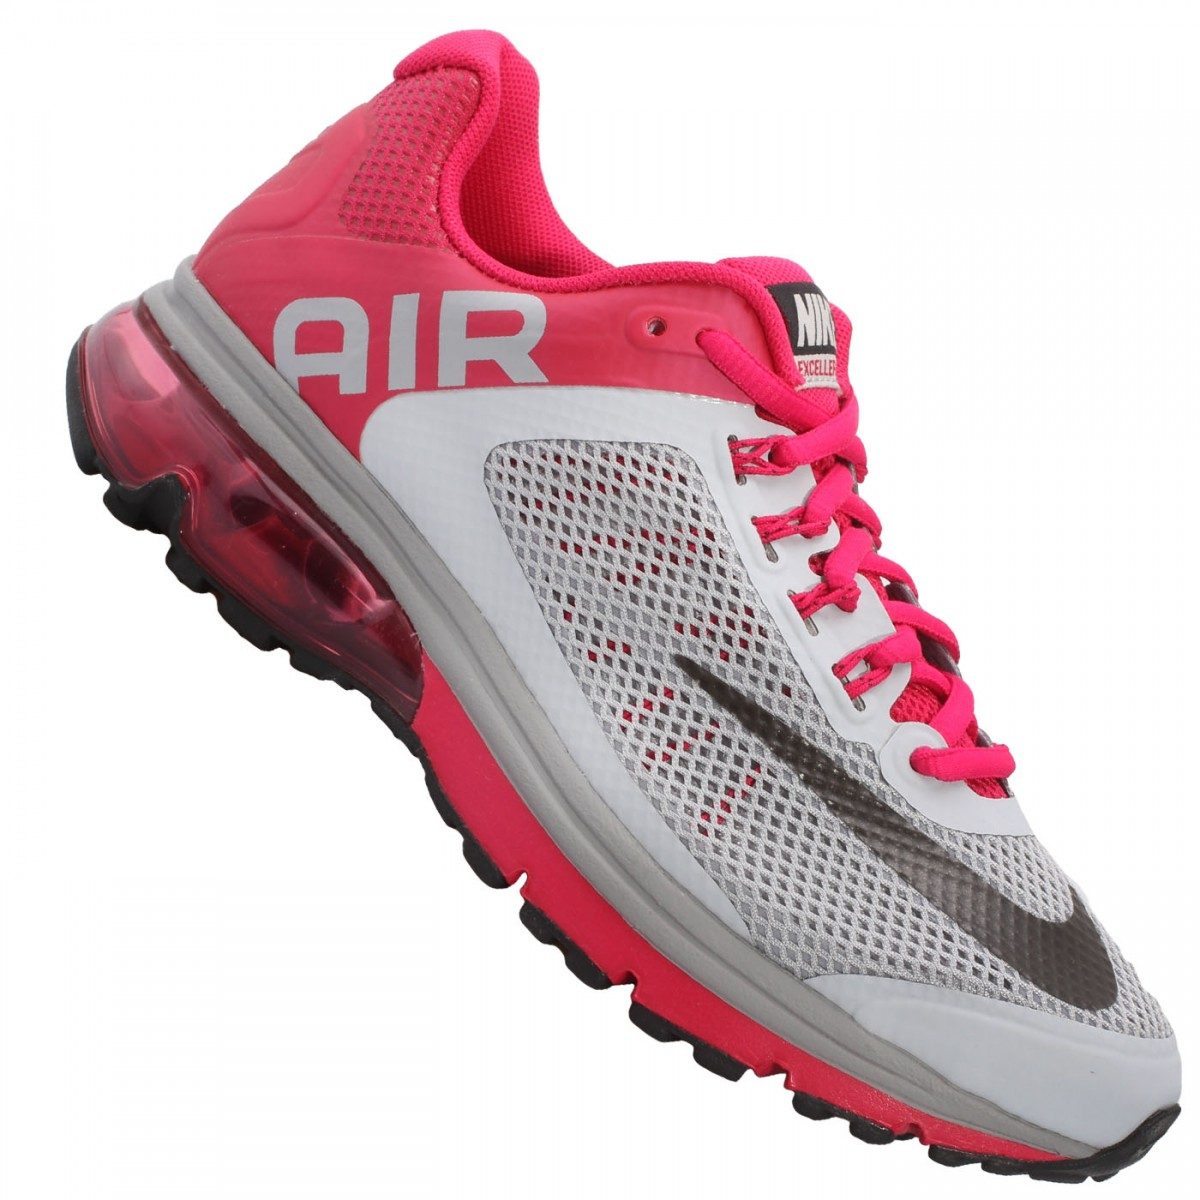 the best attitude 83fe2 1925f Tênis Nike Air Max Excellerate+ 2 | Treino e Corrida